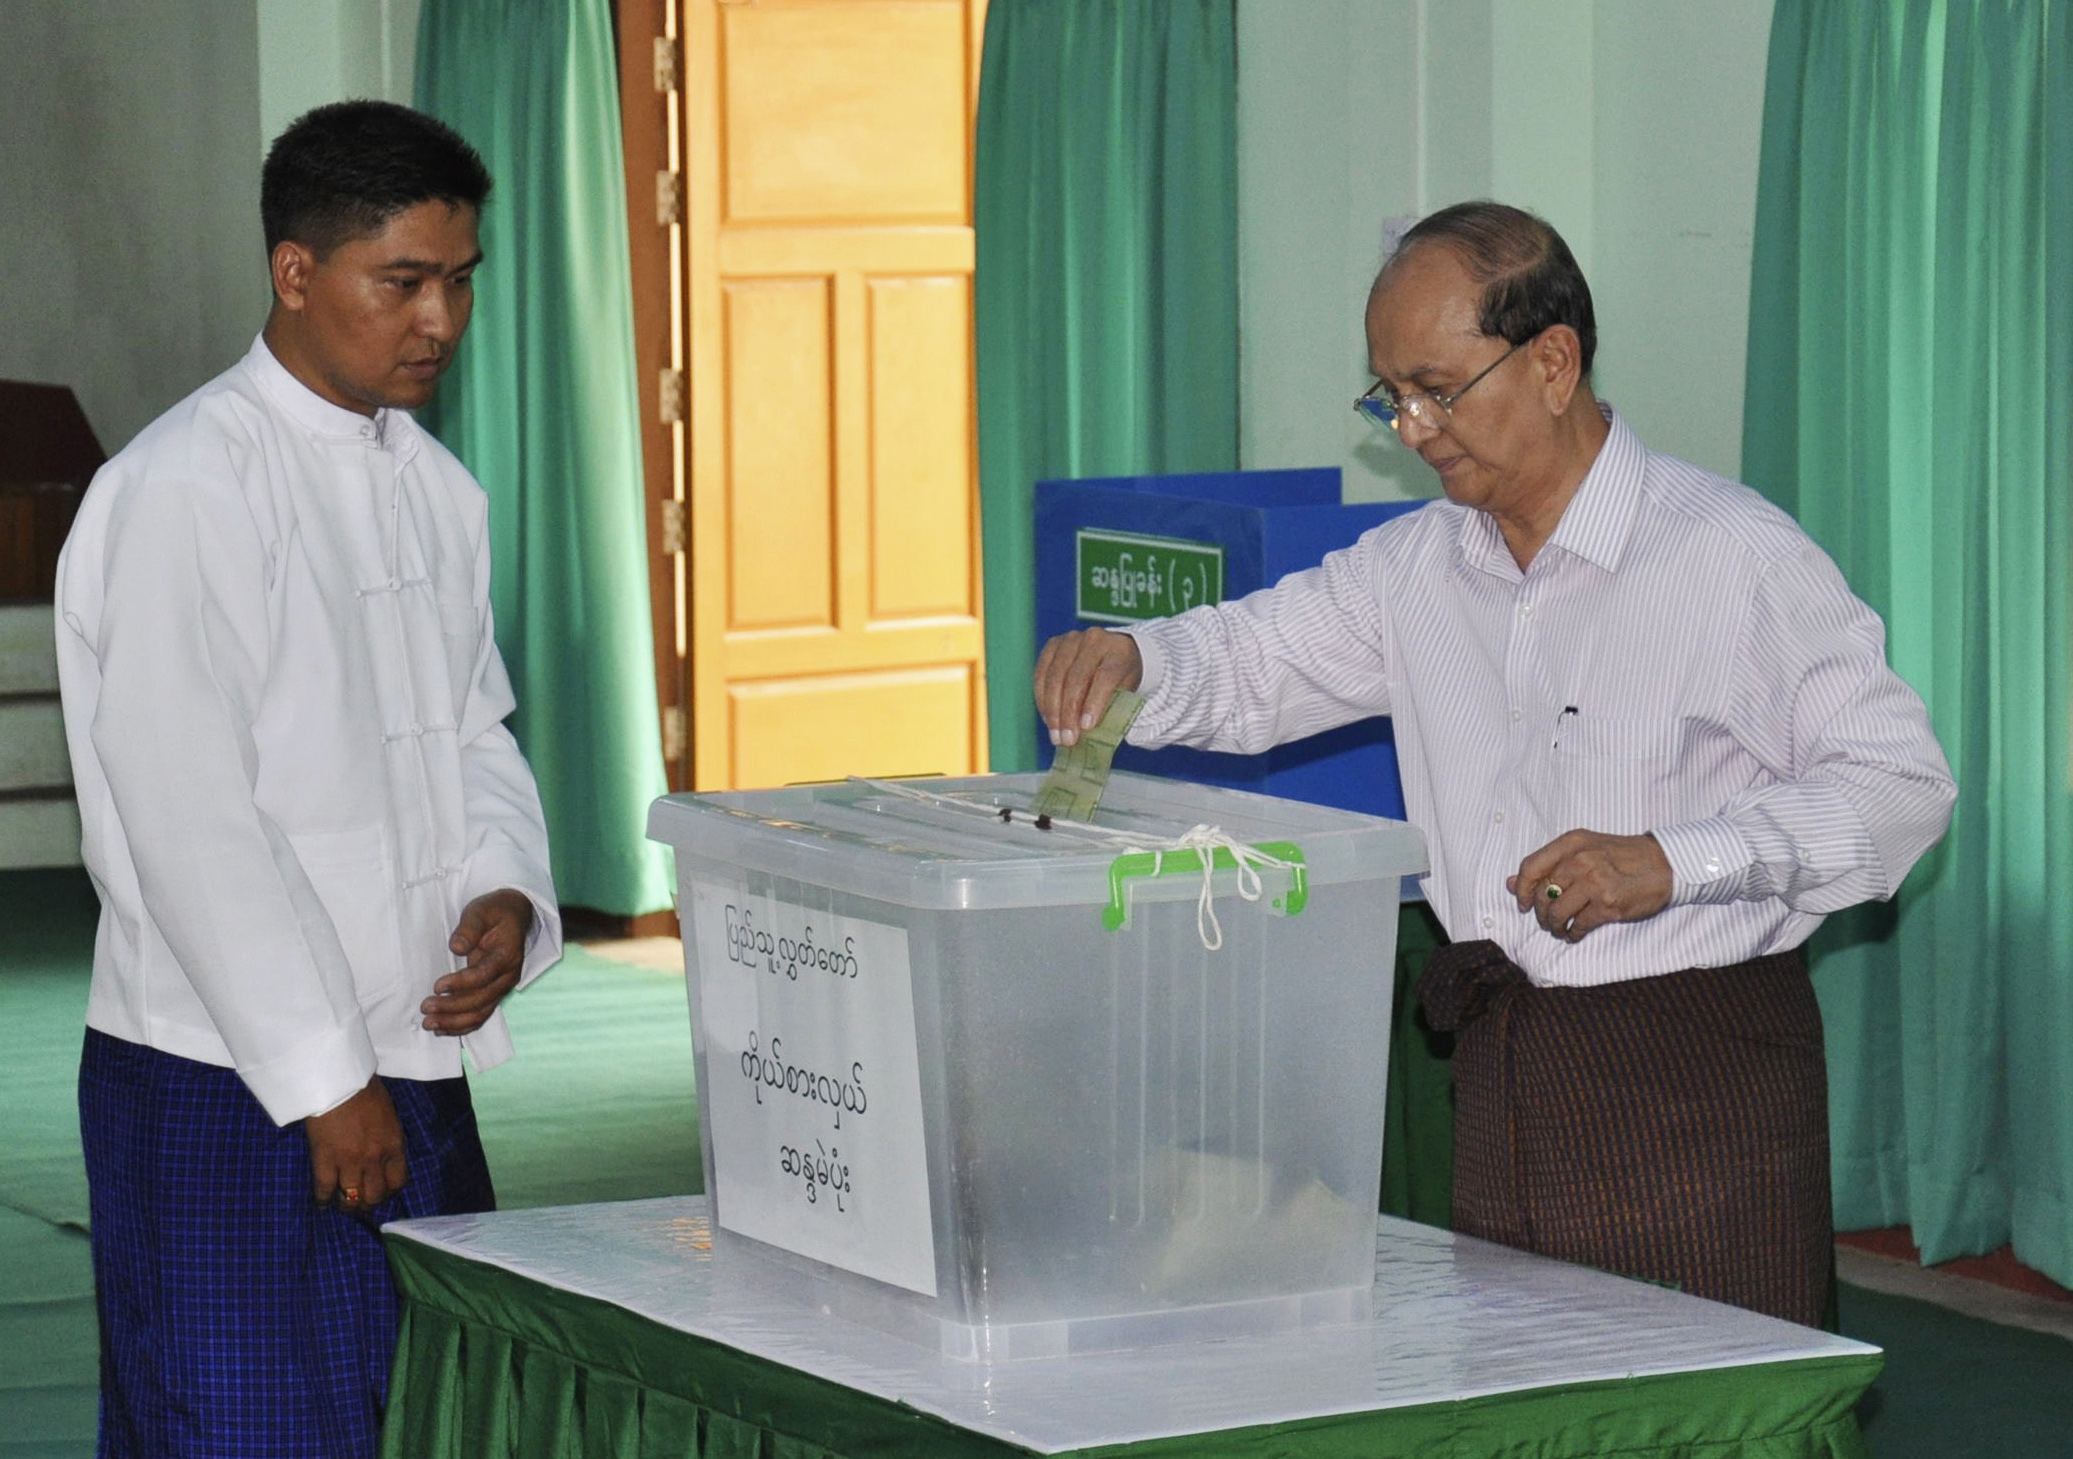 Burma's President Thein Sein, right, casts his ballot in the country's by-elections in Naypyidaw on April 1, 2012. (Photo: Reuters)